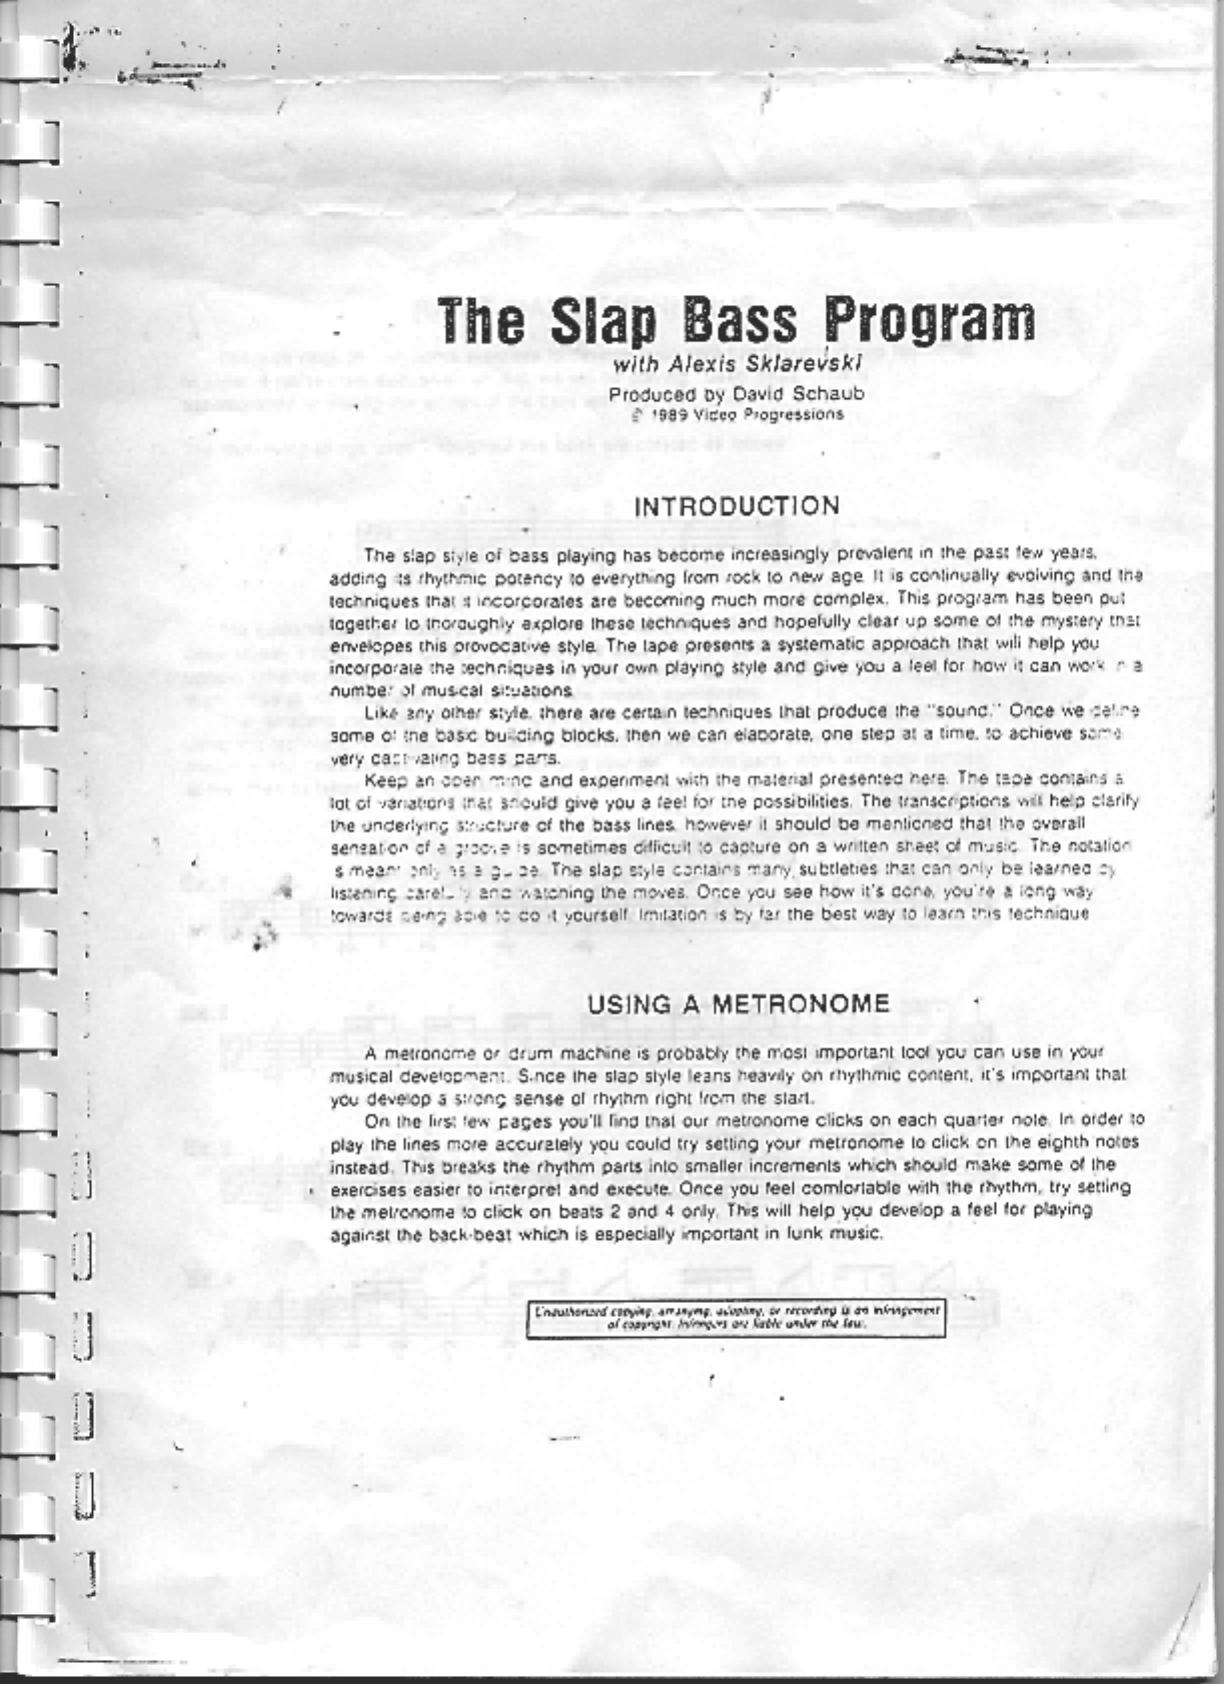 Alexis Sklarevski Slap Bass Program Pdf